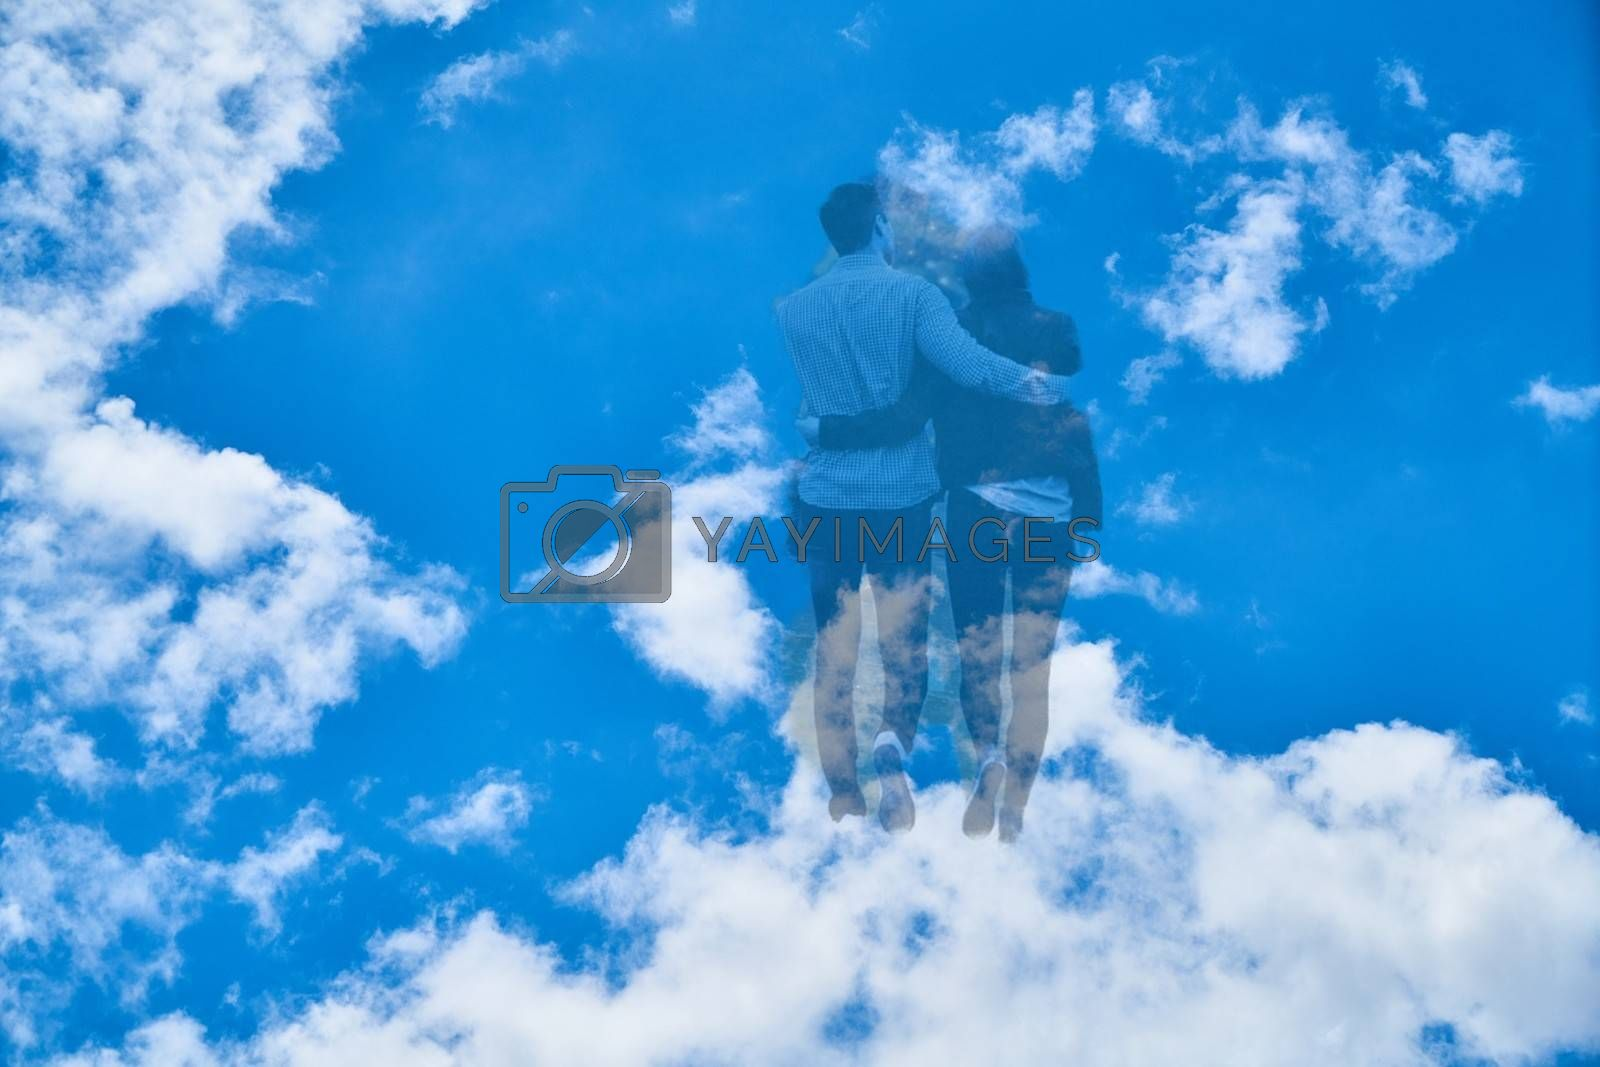 Royalty free image of Couple walks to the heavens through the clouds by balage941